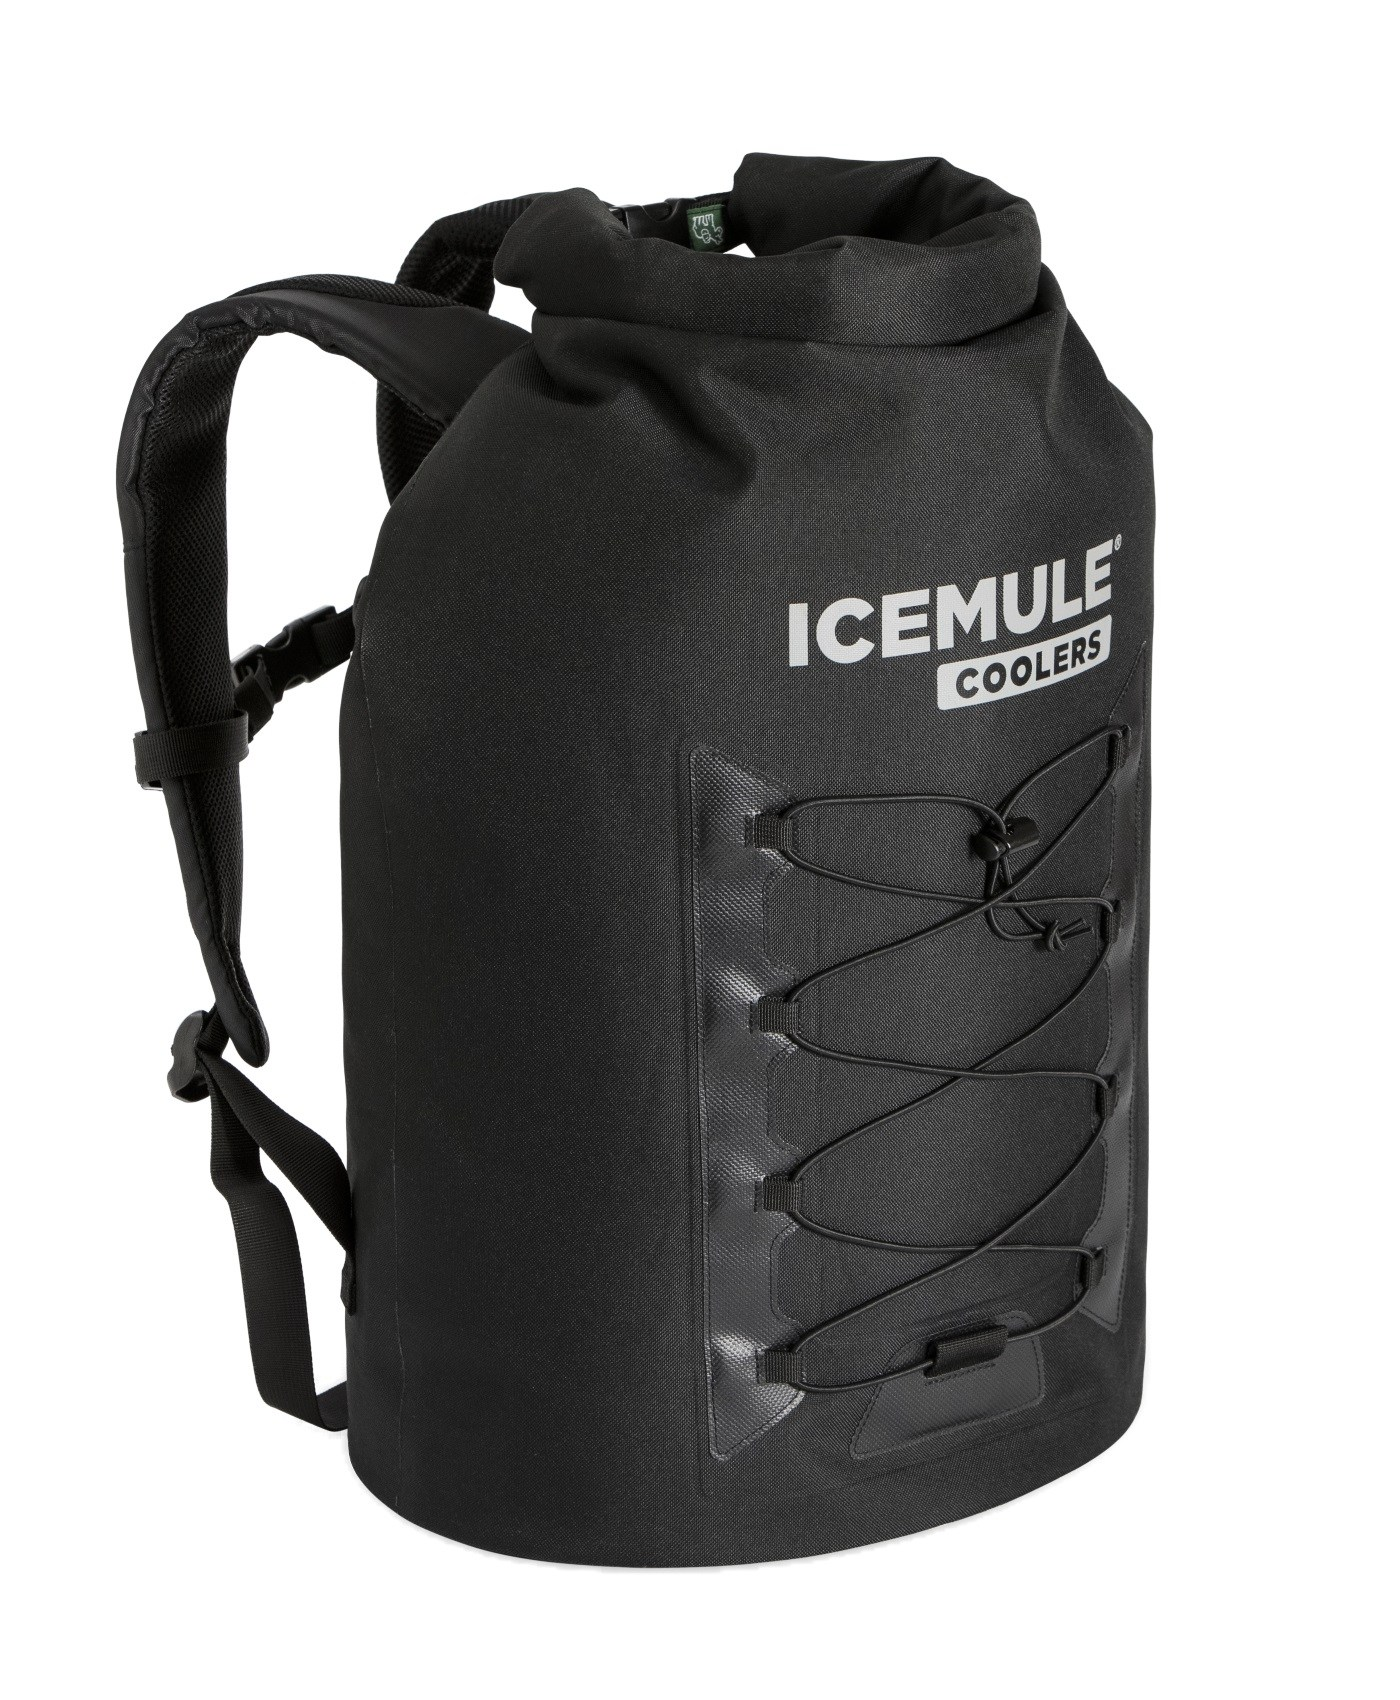 IceMule Coolers Pro Cooler, Large Backpack Cooler- Great for Camping, Hiking, Fishing,... by